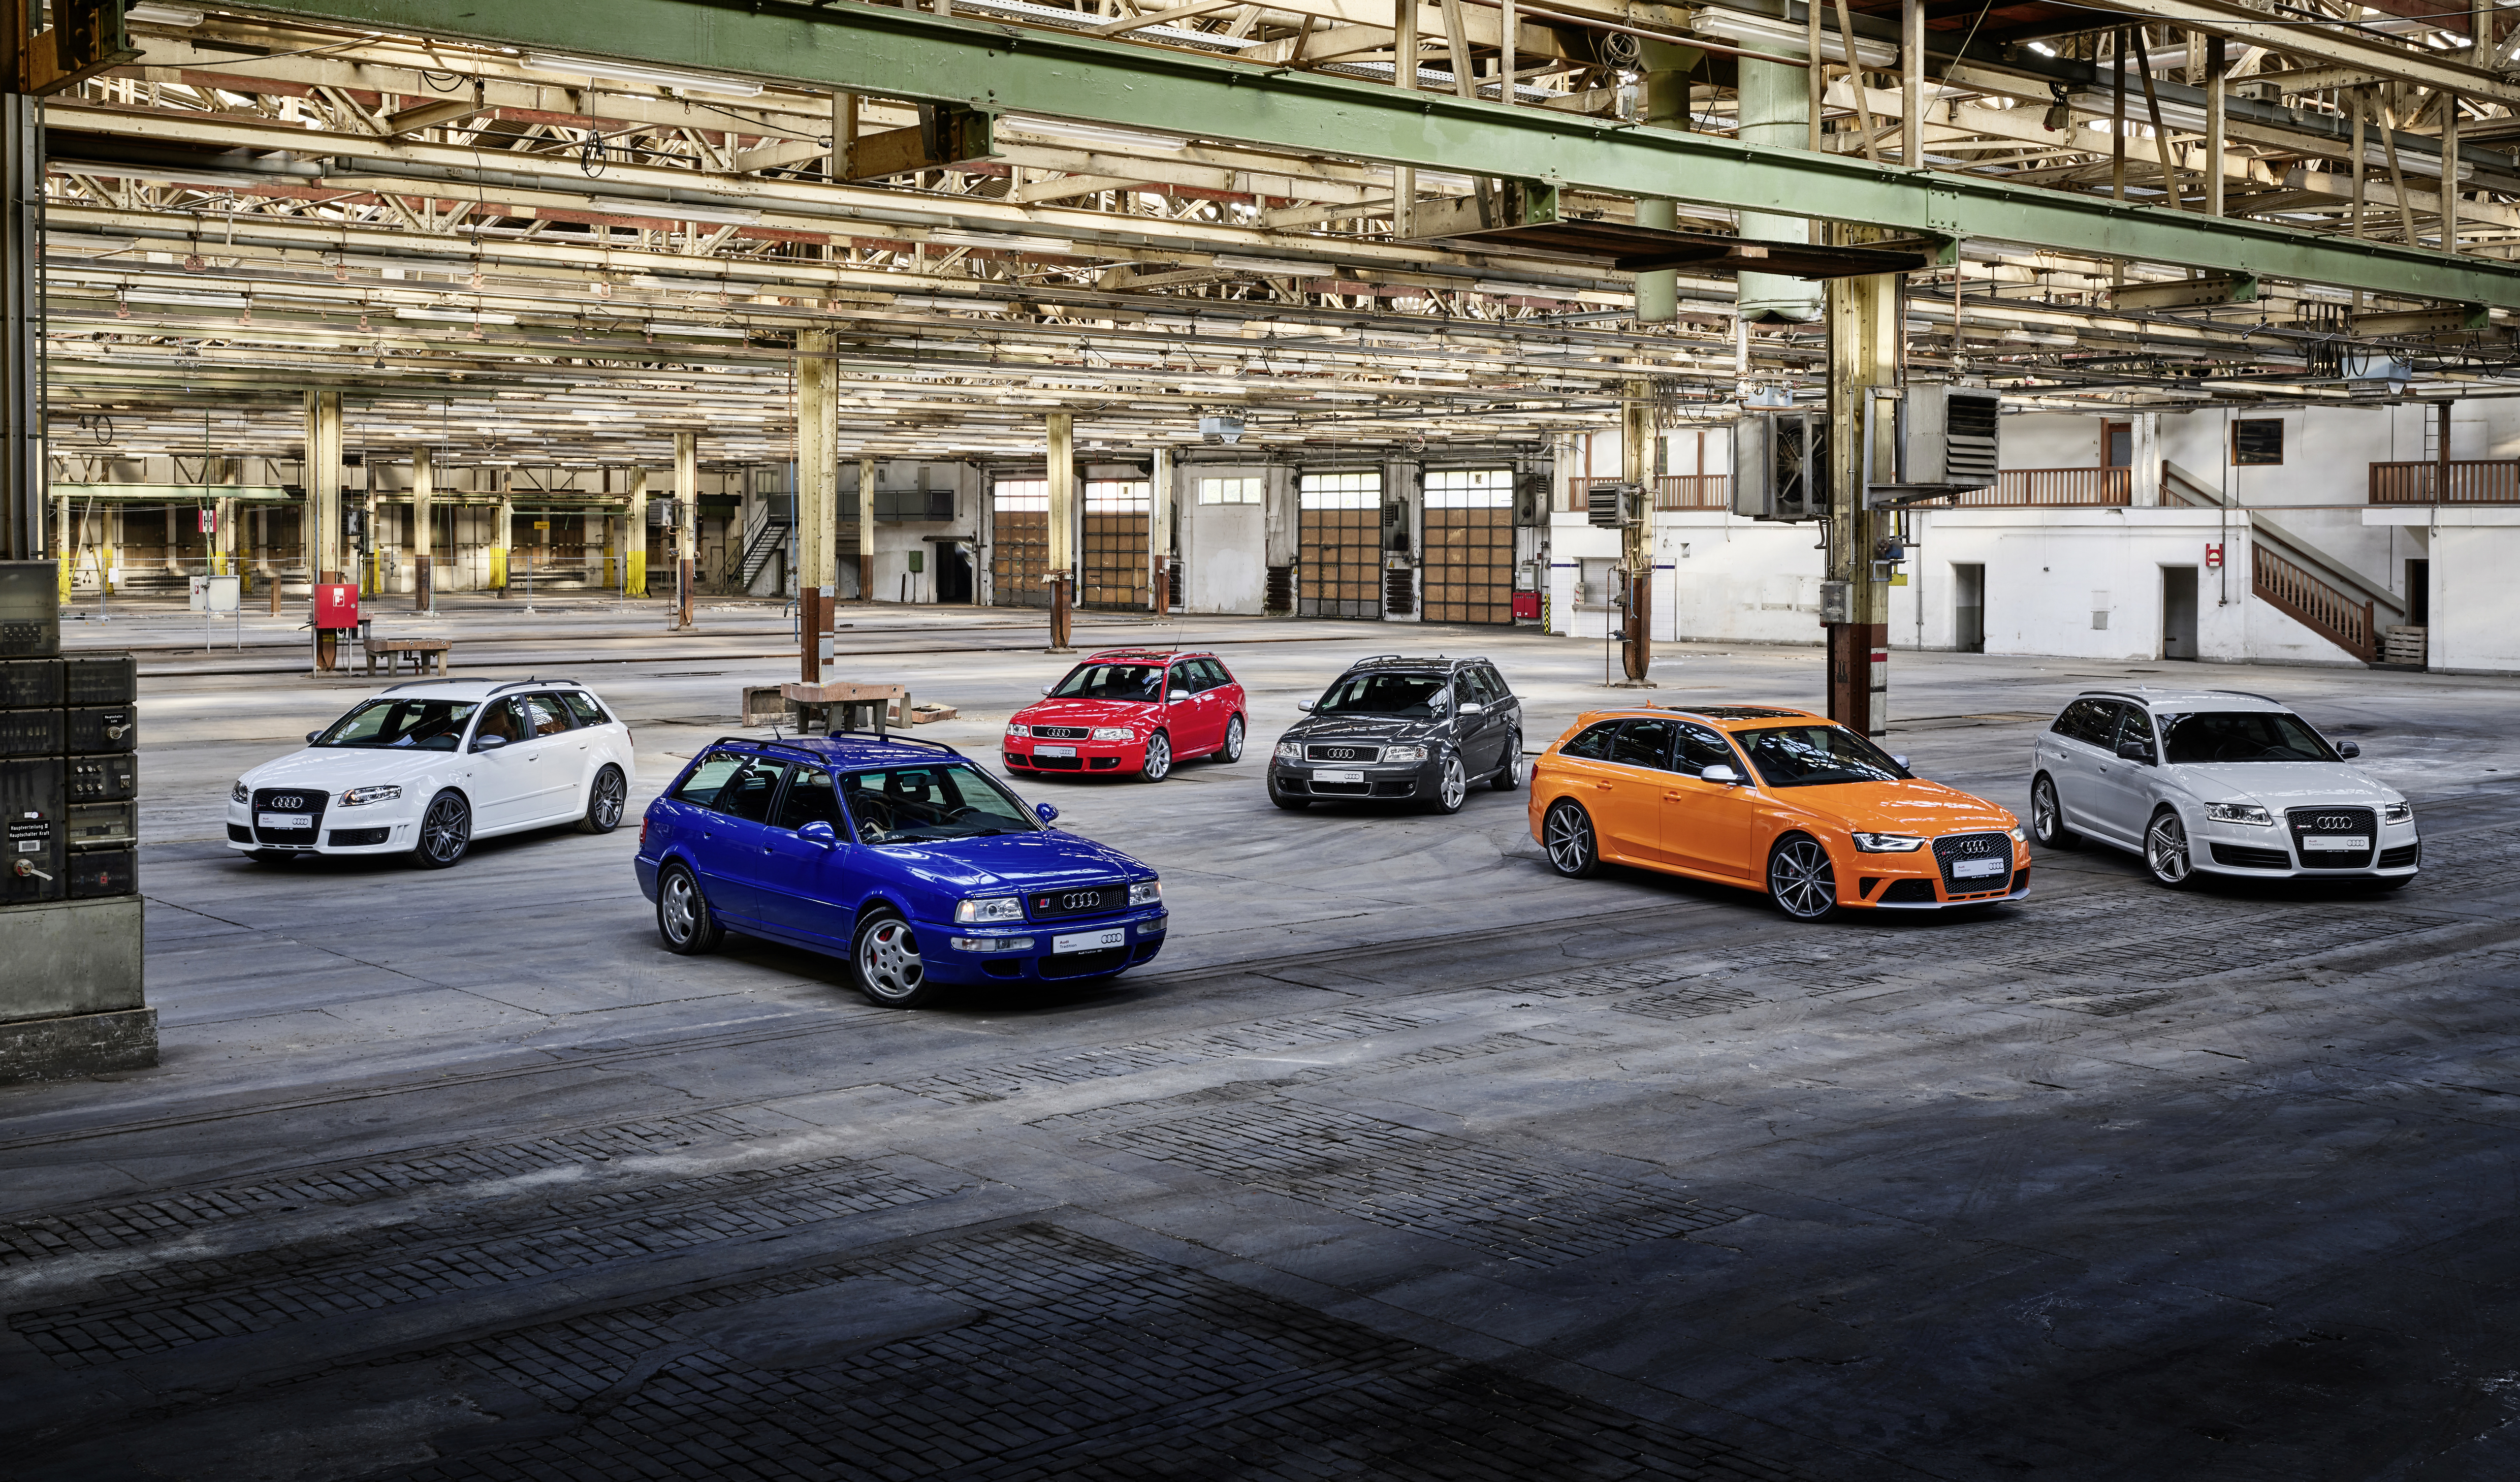 From left to right: Audi RS 4 Avant (Typ B7), Audi RS 2 Avant, Audi RS 4 Avant (Typ B5), Audi RS 6 Avant (Typ C5), Audi RS 4 Avant (Typ B8), Audi RS 6 Avant (Typ C6)